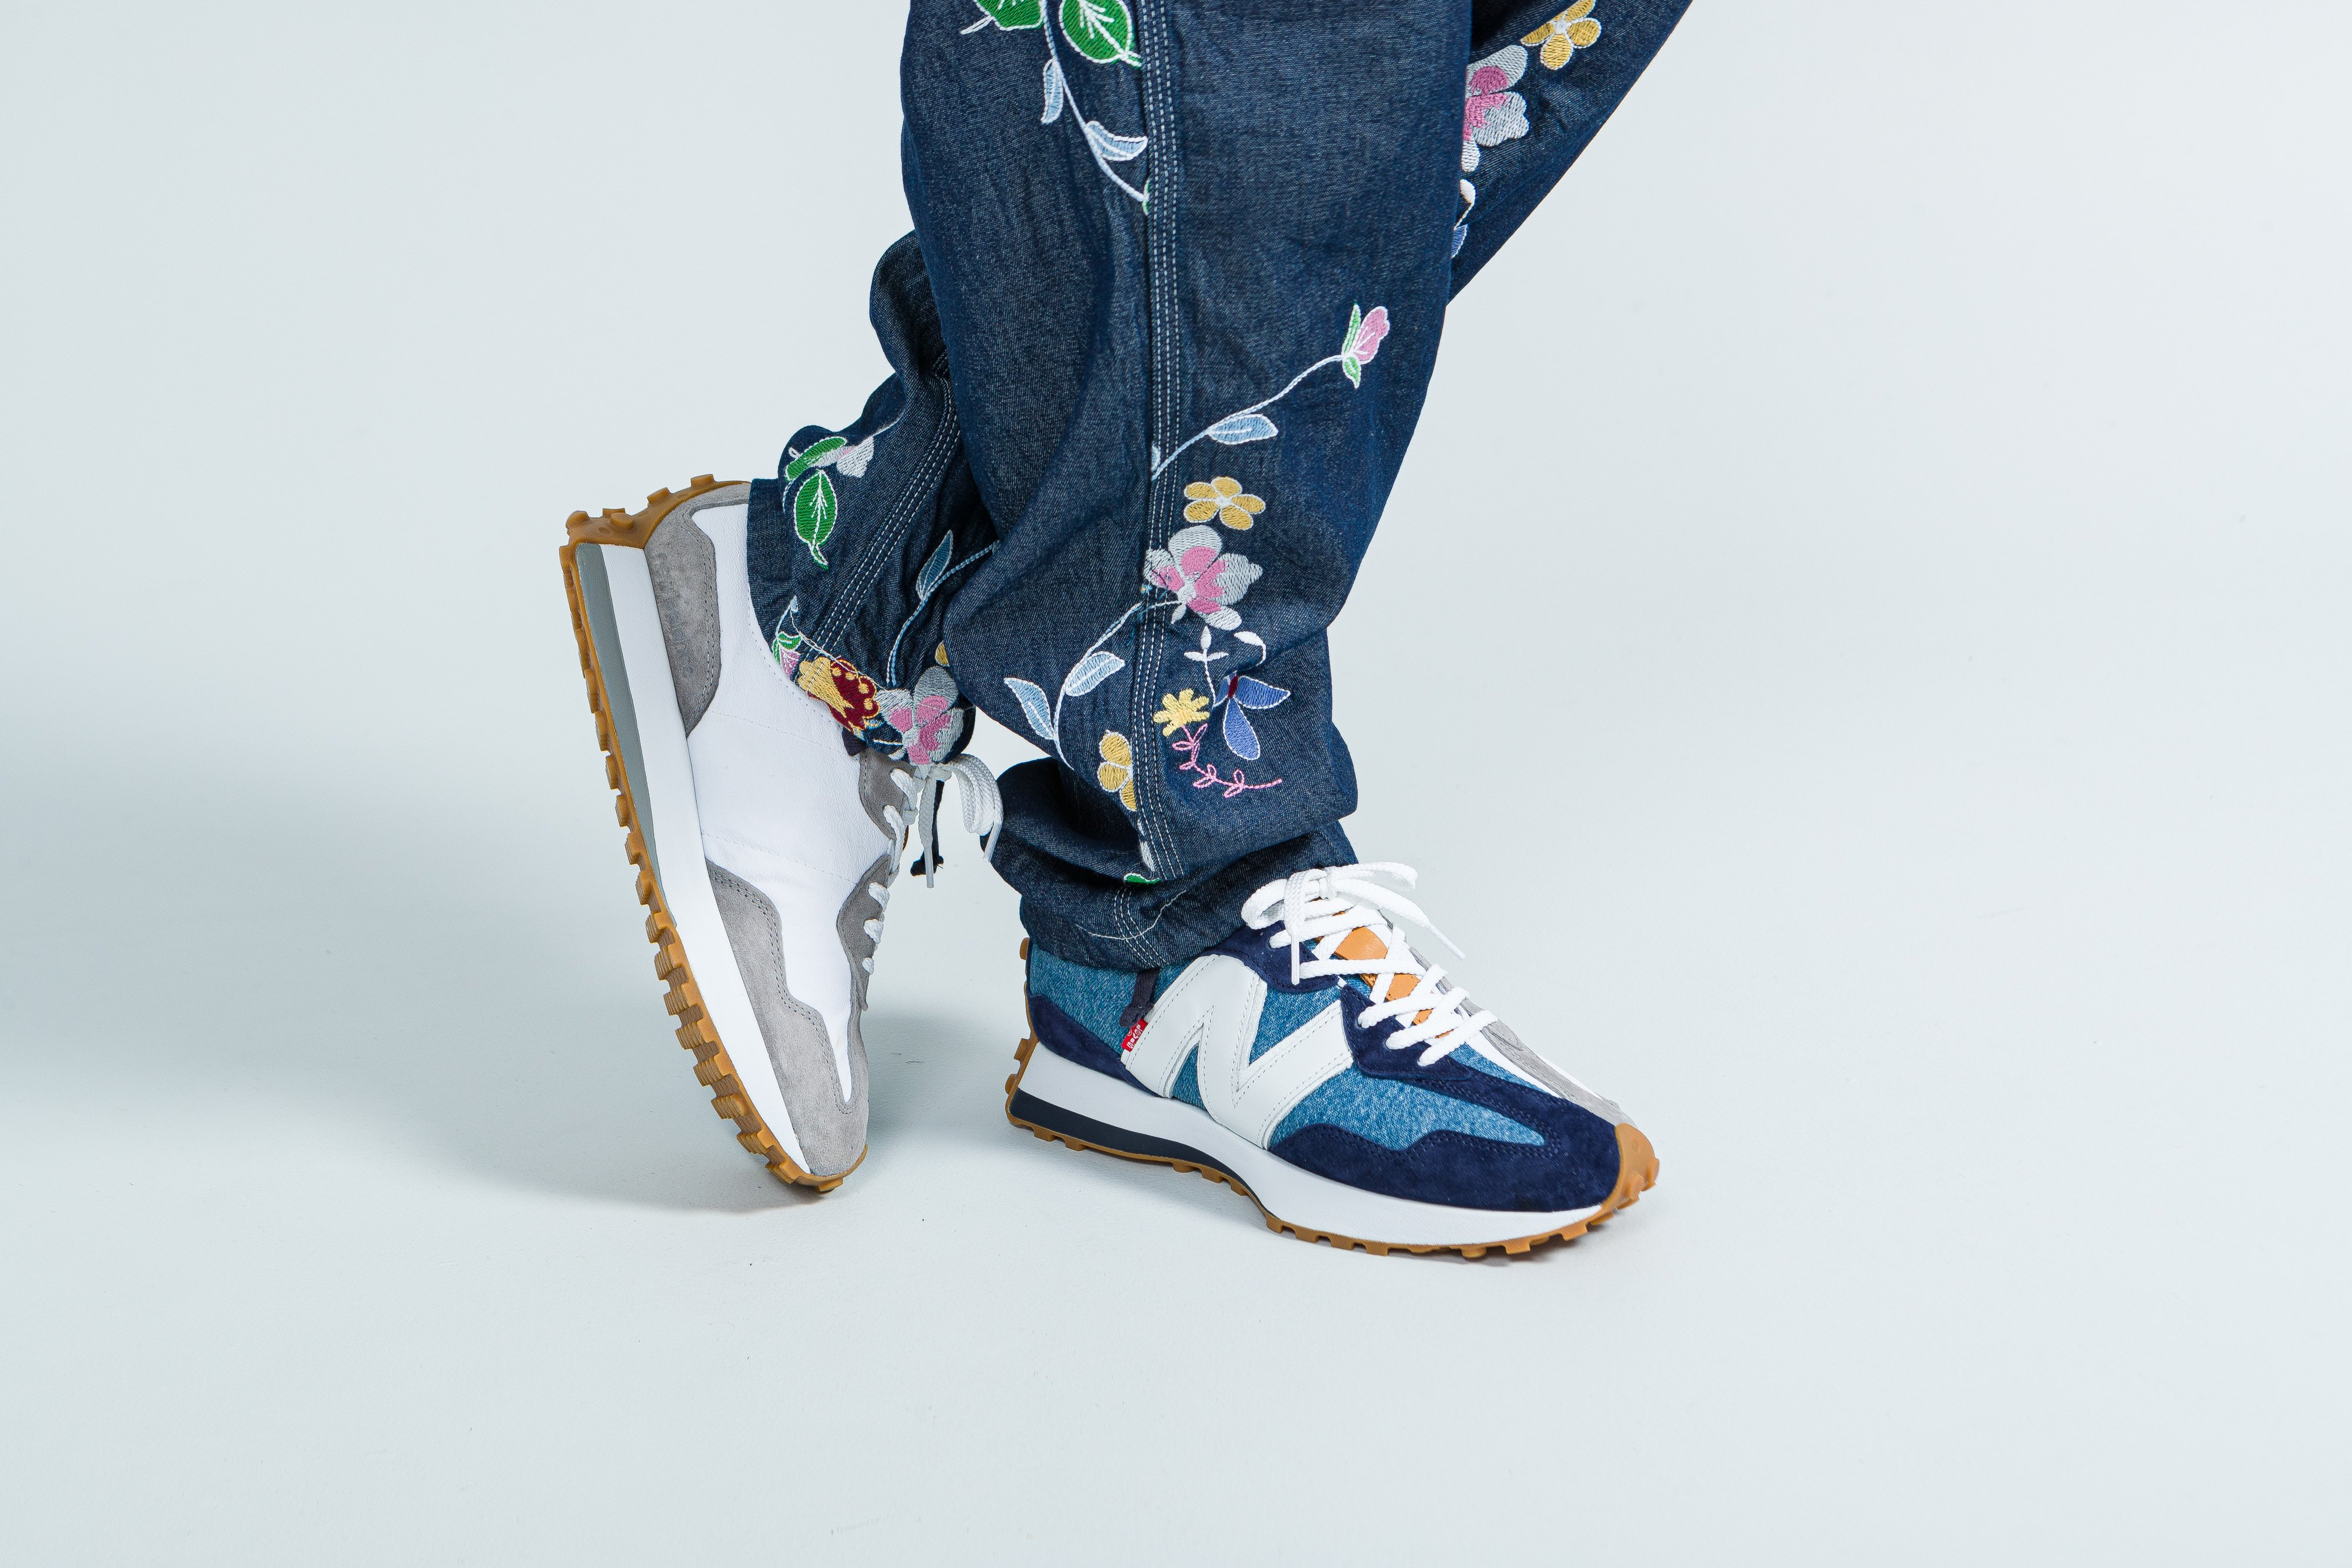 Launches - New Balance X Levi's 327 'Levi's For Feet' | Up There